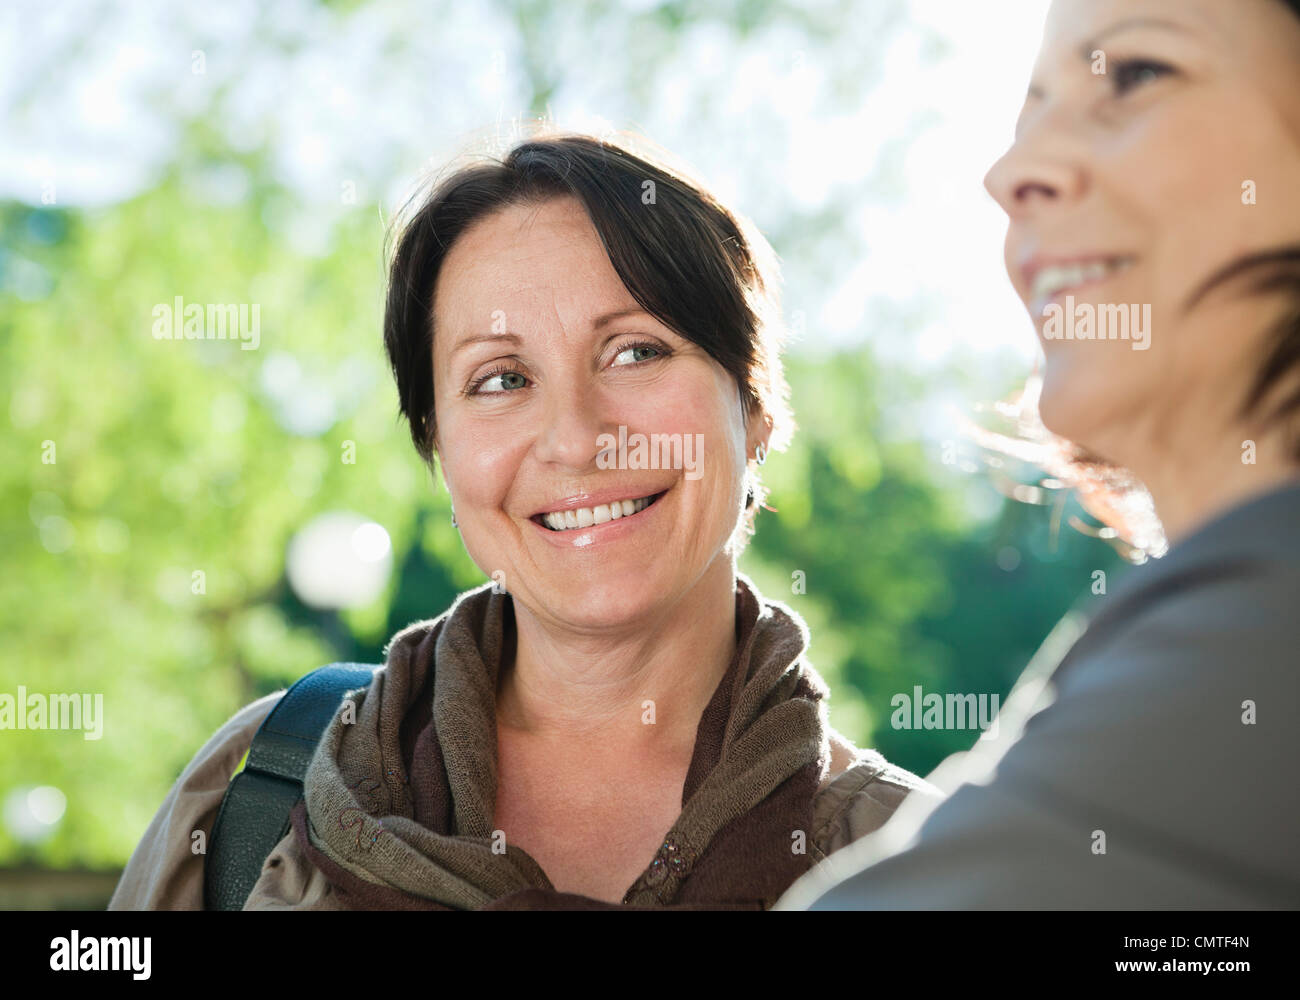 Close-up of coworkers smiling - Stock Image